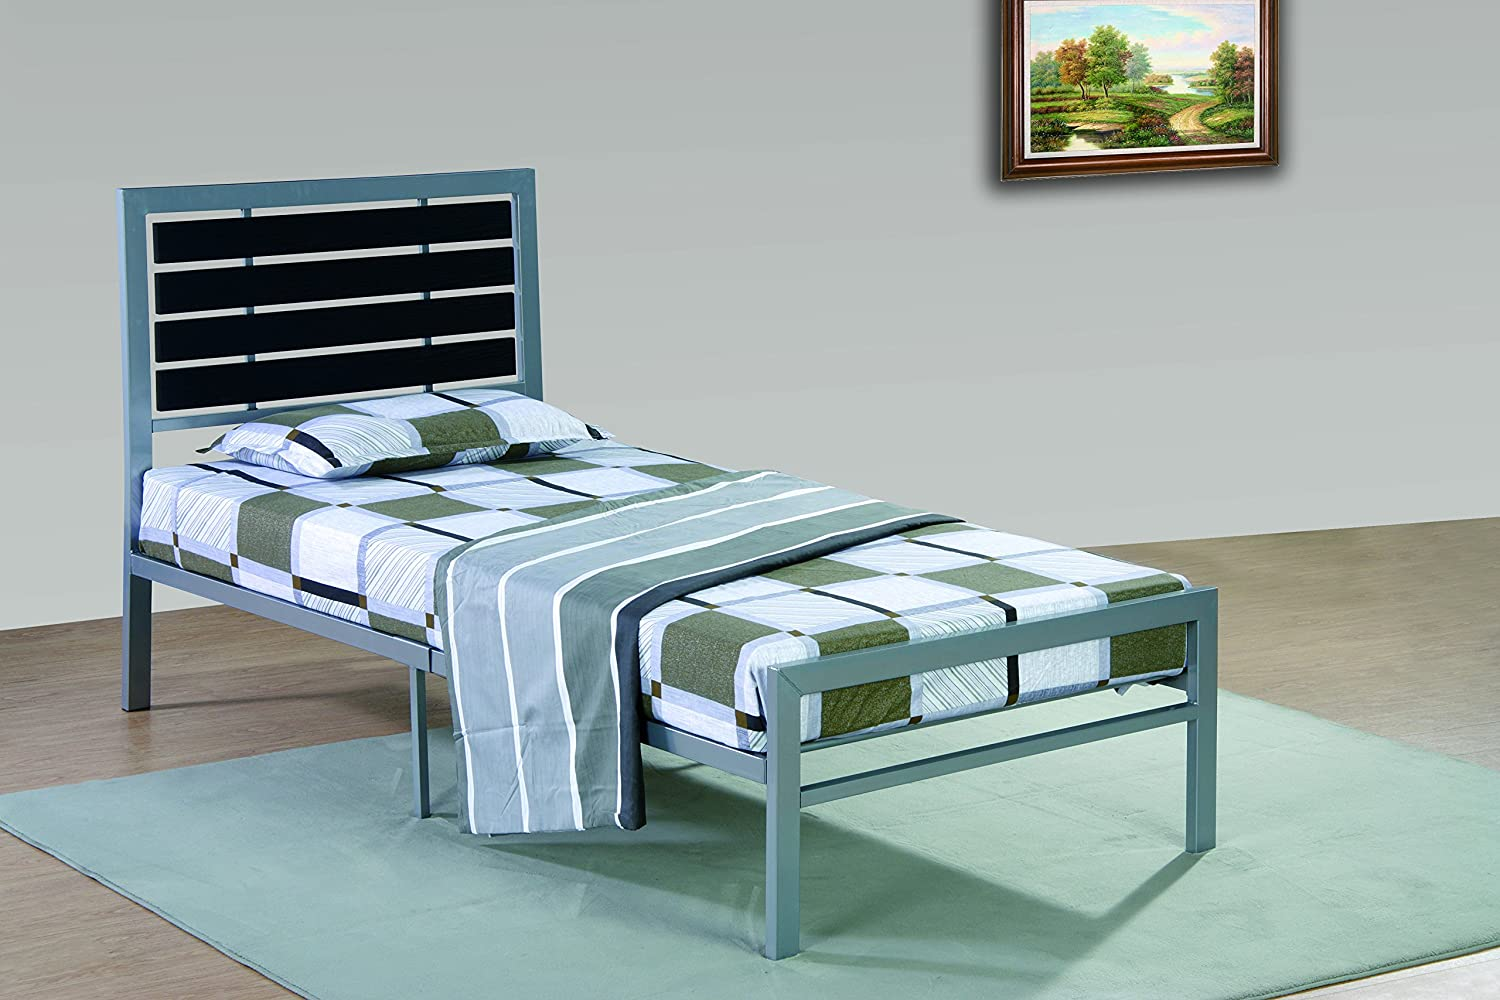 Amazon.com: Furniture World Lloyd Contemporary Metal Bed with Ladder ...